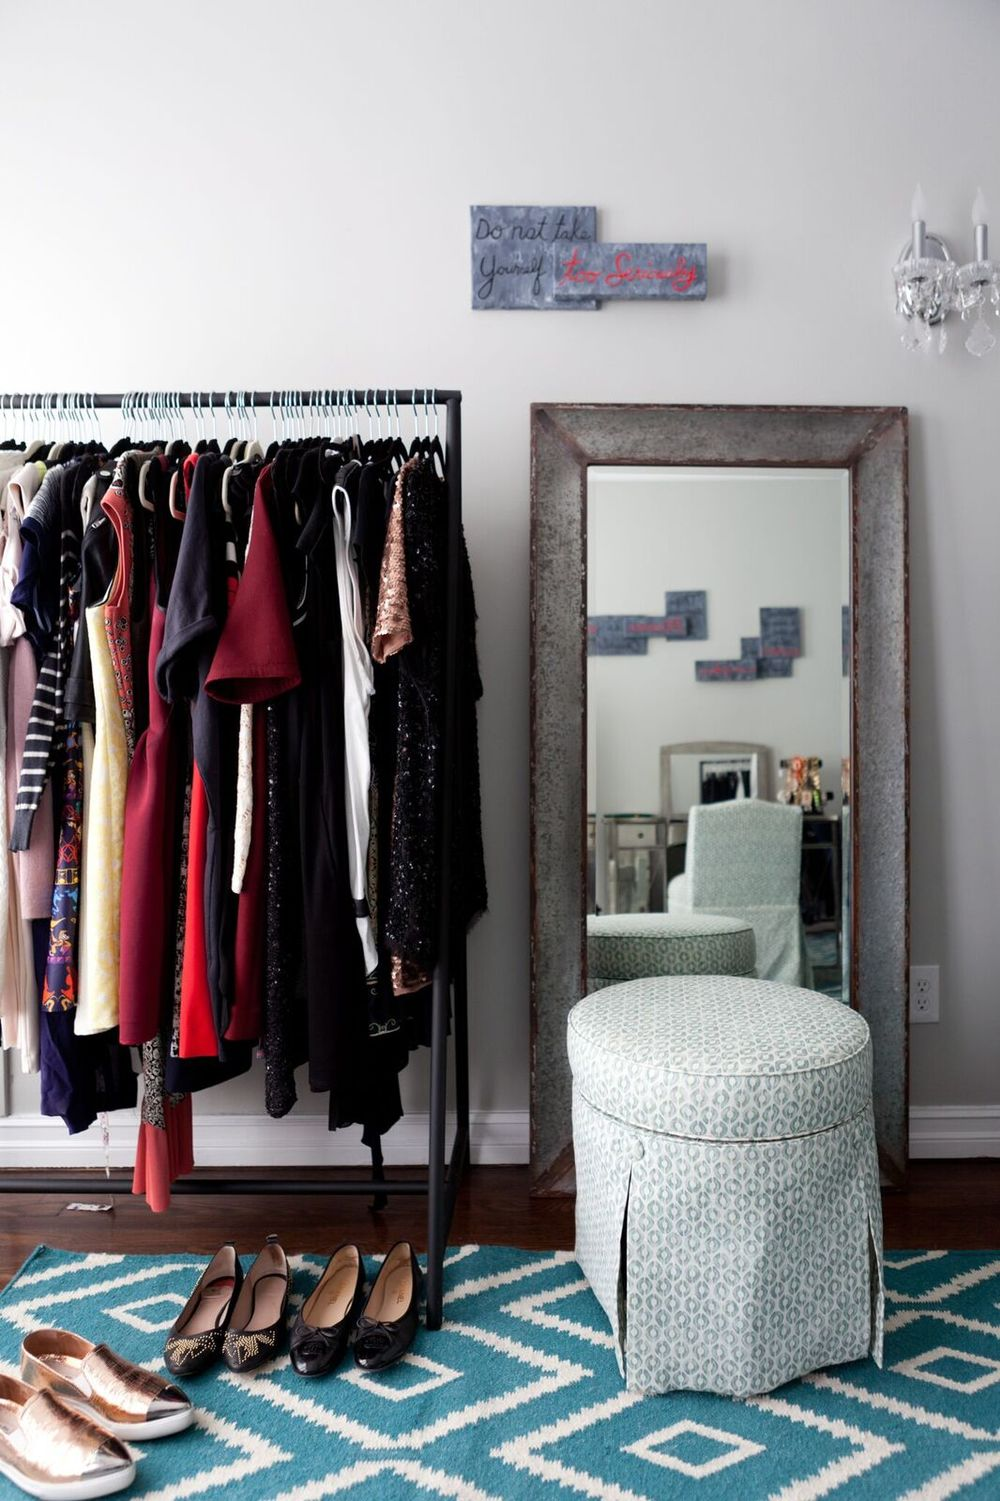 Two more garment racks surround the galvanized mirror on the opposite wall. The graphic art pieces are a perfect reminder, and were inspired by a speech given by my client's beloved grandmother. A tufted pouf (it swivels!) is upholstered to match the vanity stool.